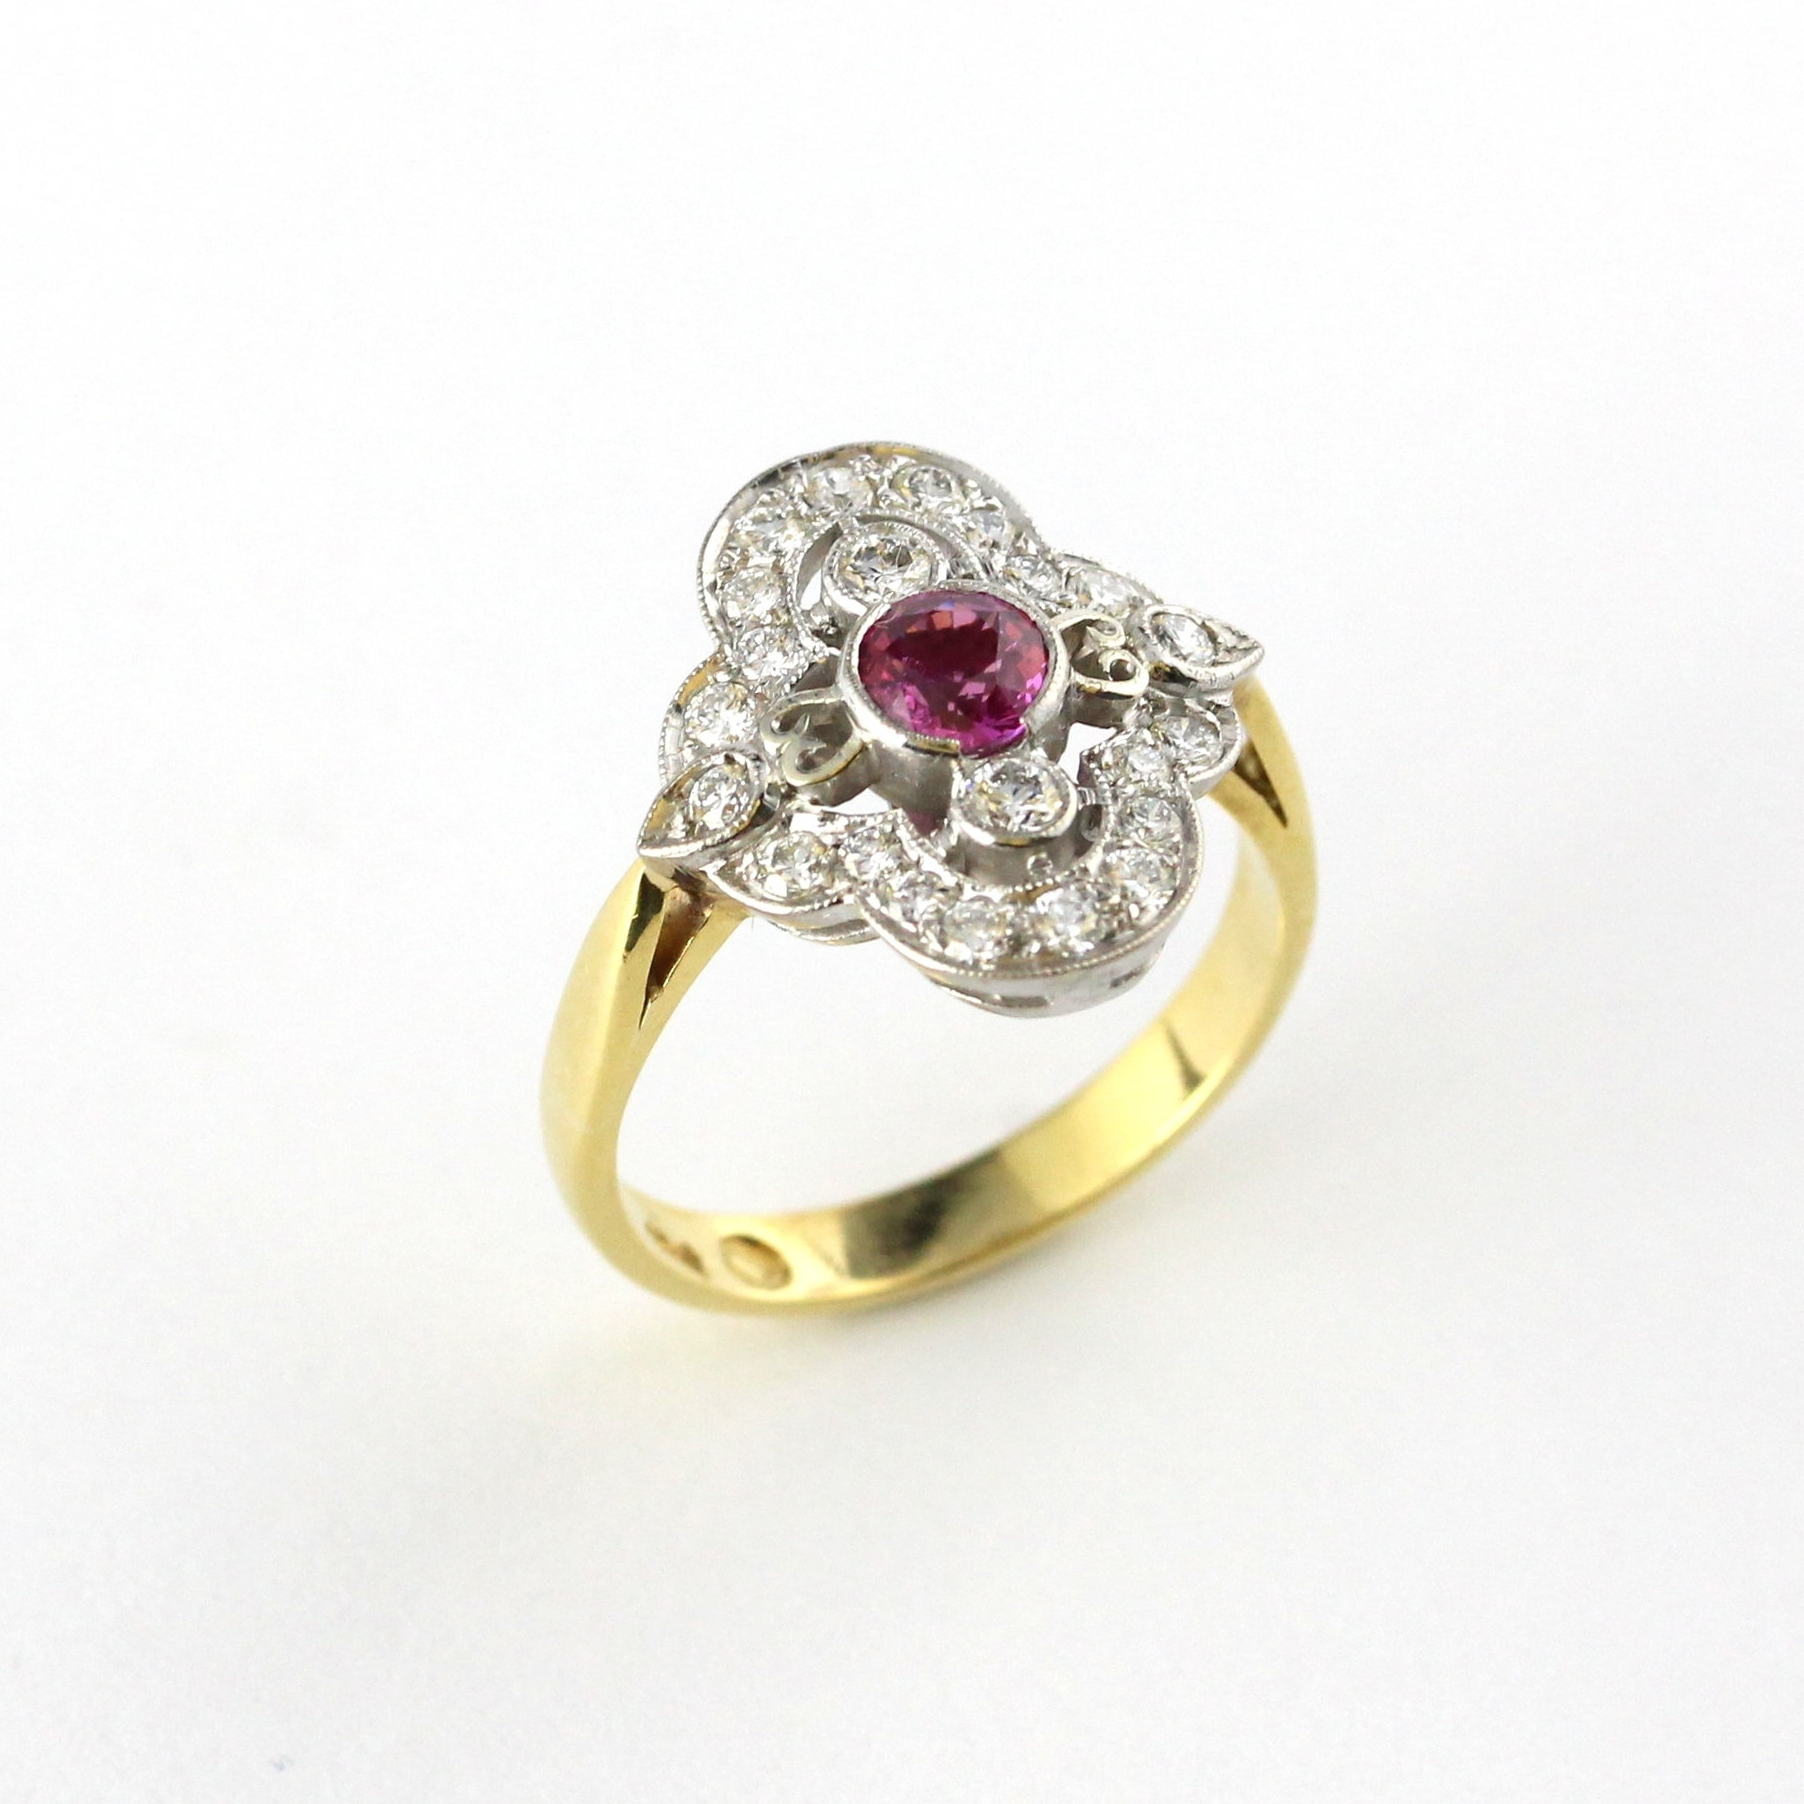 Art deco pink sapphire ring with diamonds in yellow and white gold.